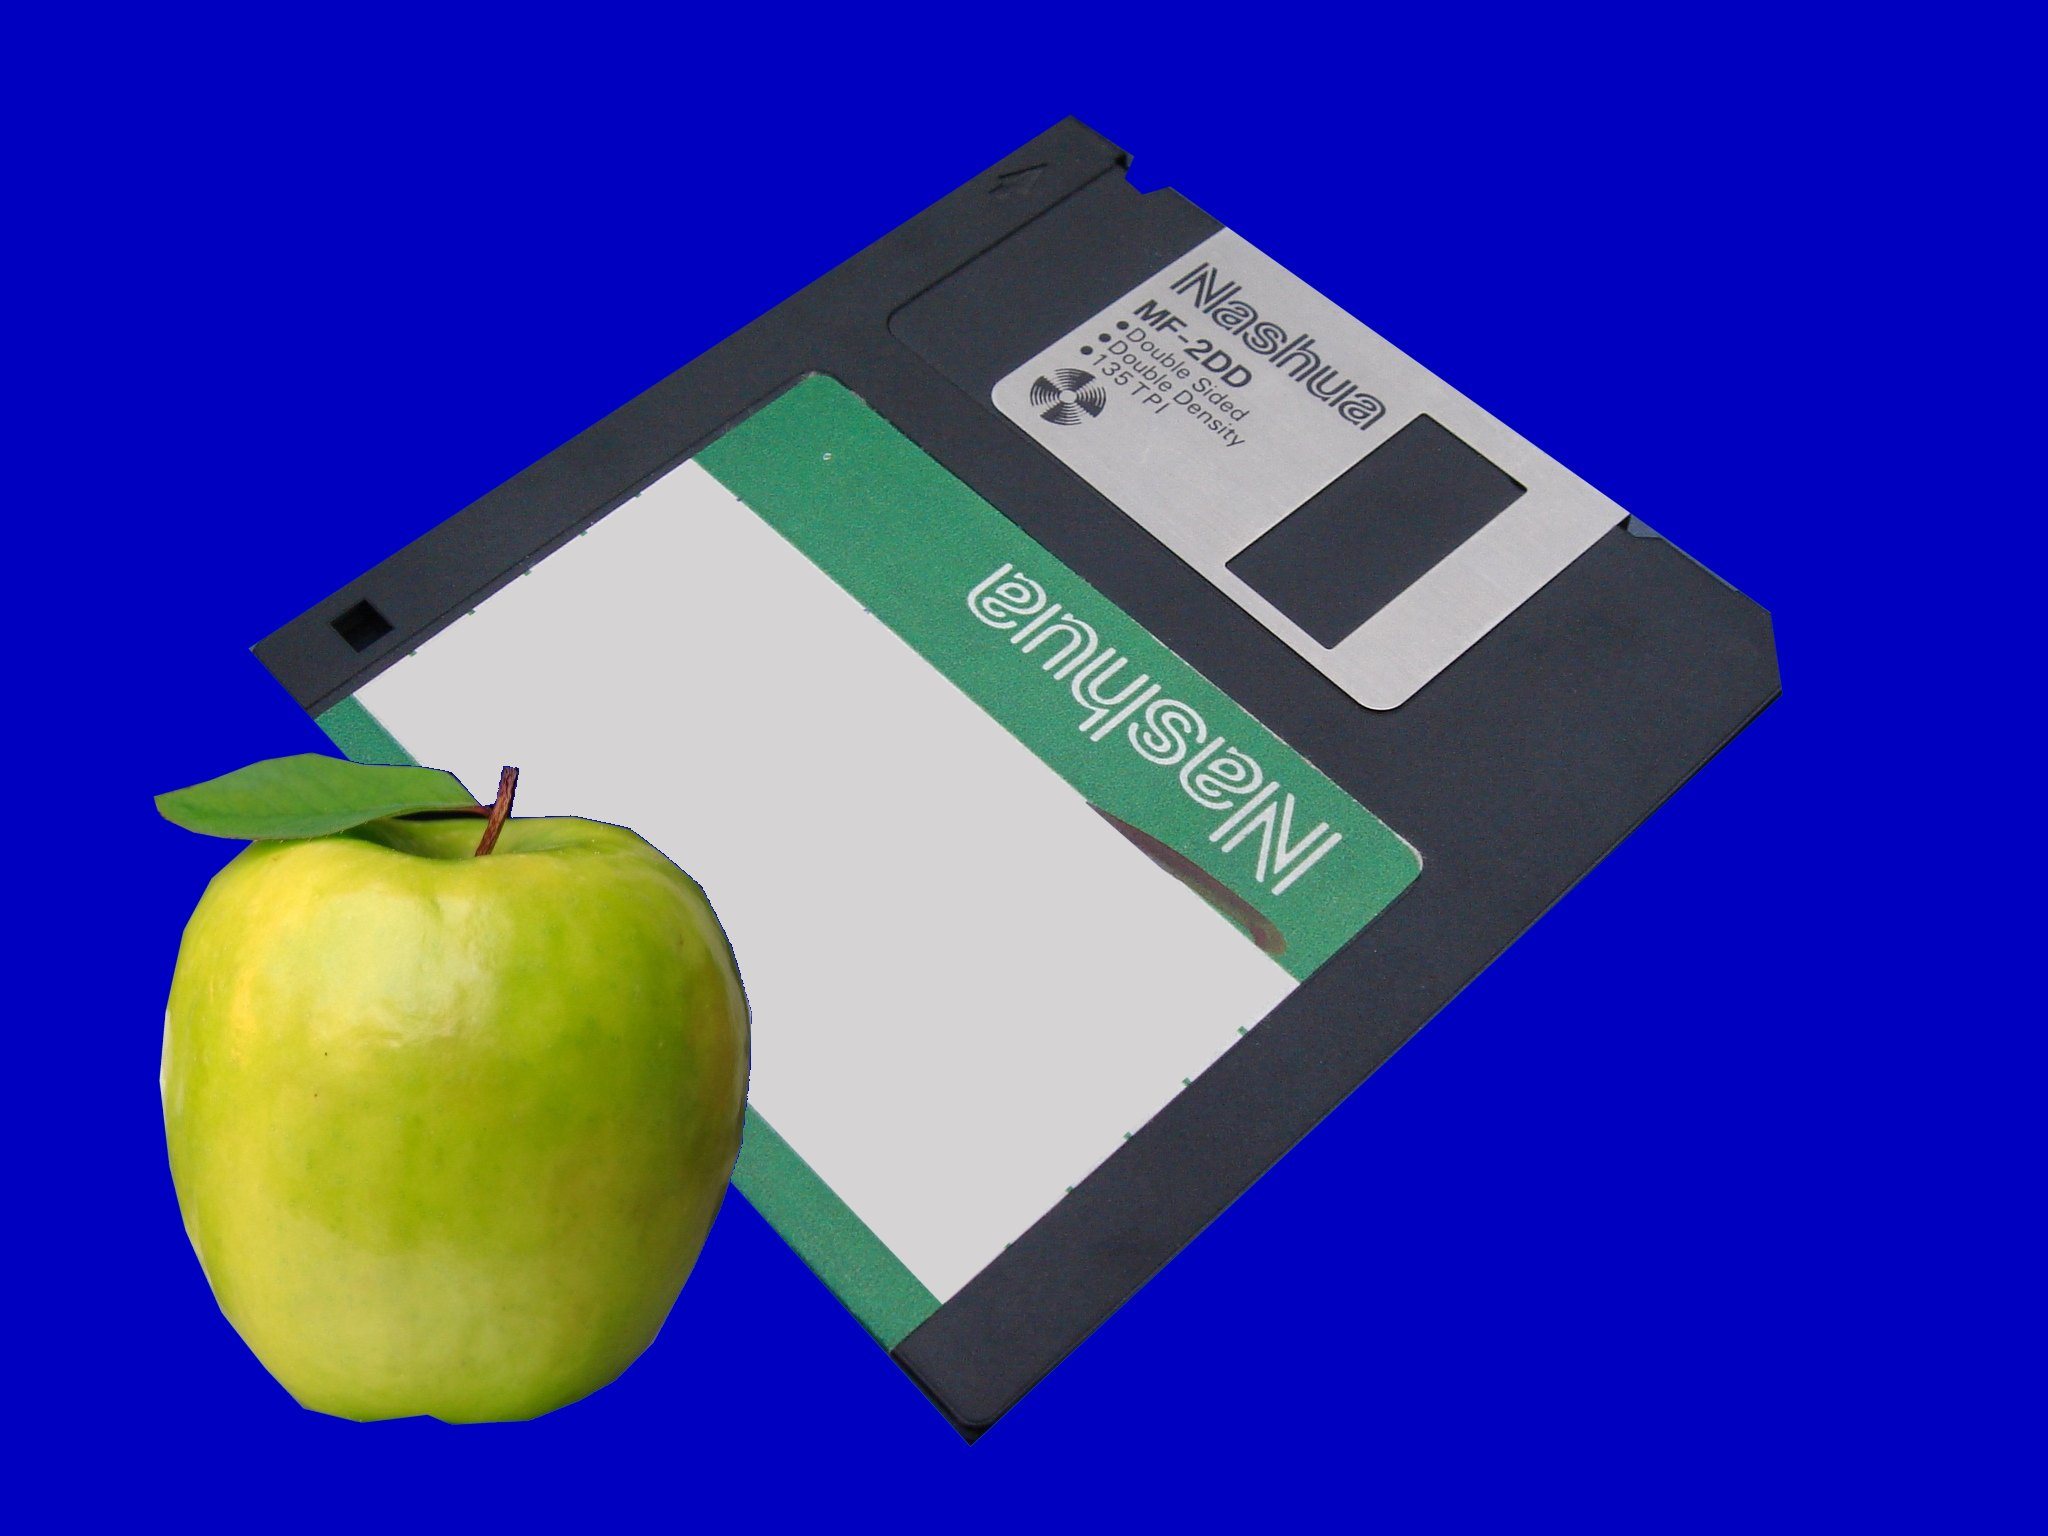 An MF-2DD double density floppy disk from Apple Mac computer.